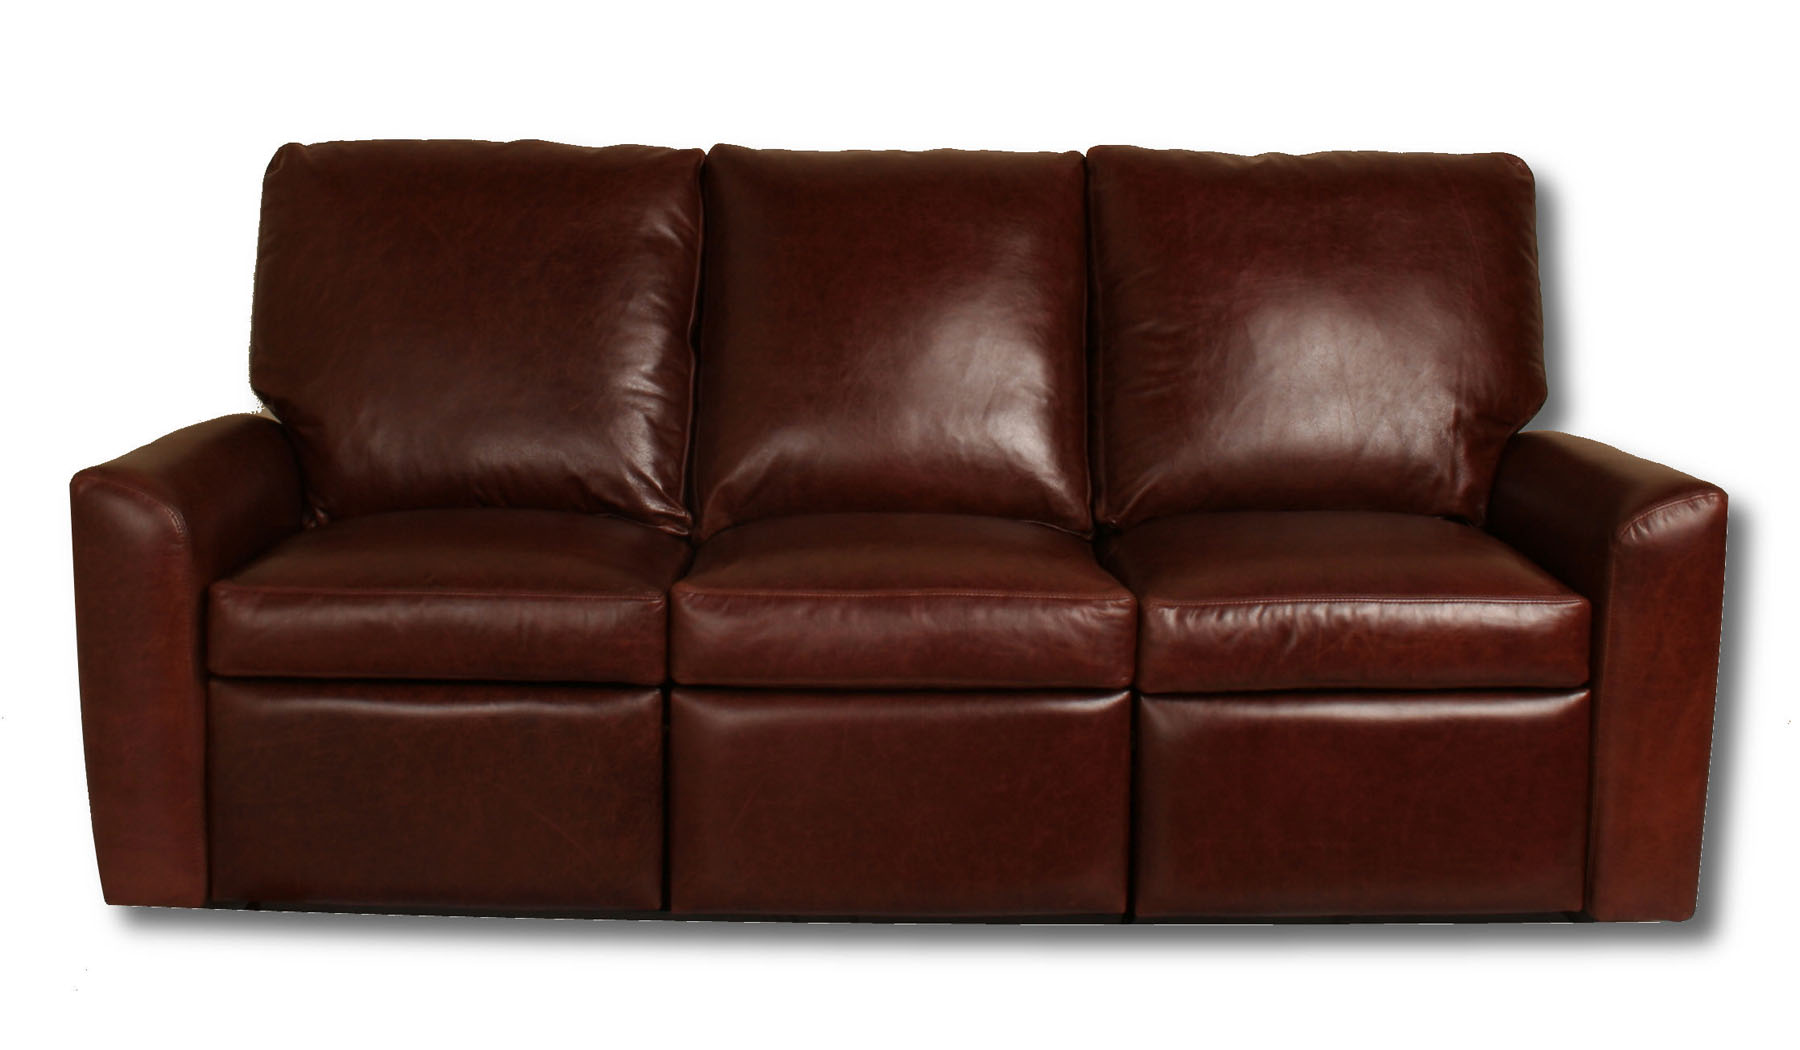 Addison Reclining Leather Sofa